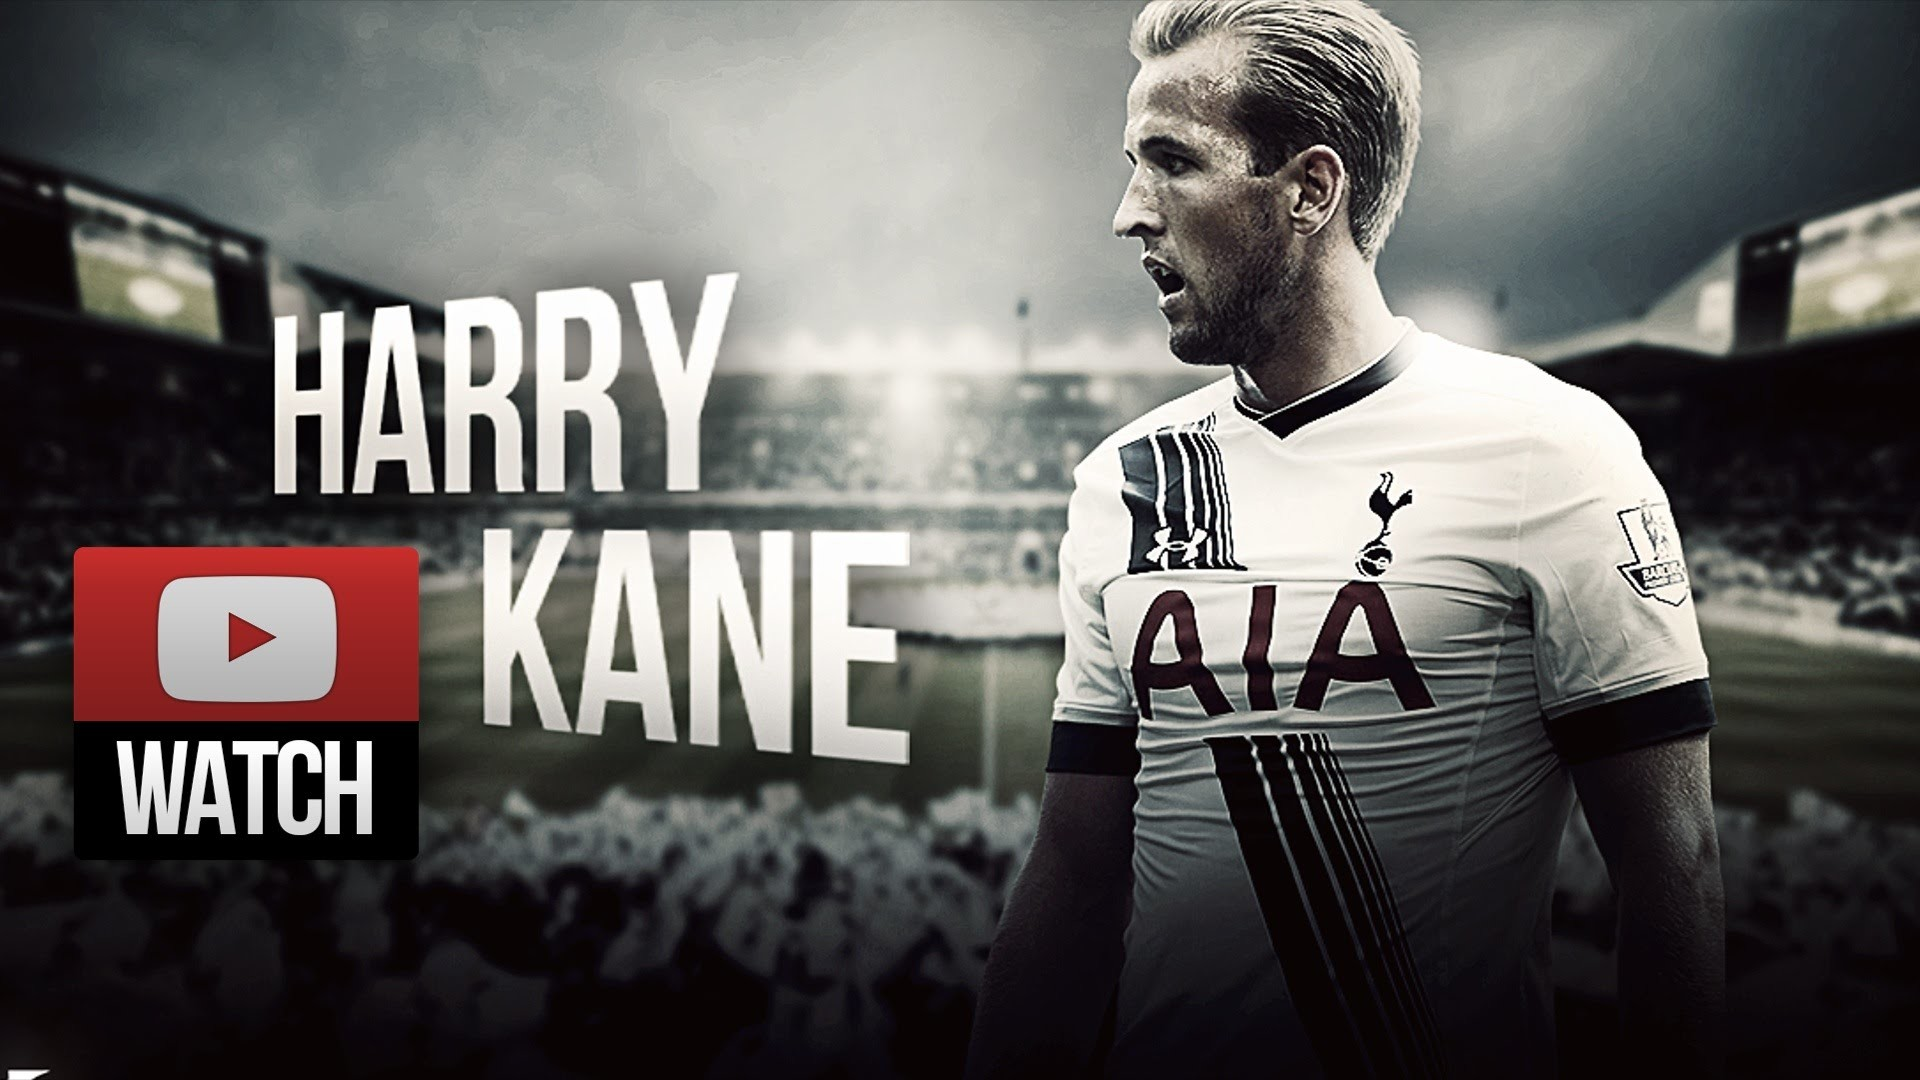 1920x1080 Harry Kane - The Hurricane - Zero to Hero - Amazing Goals & Skills - 2016  HD - YouTube